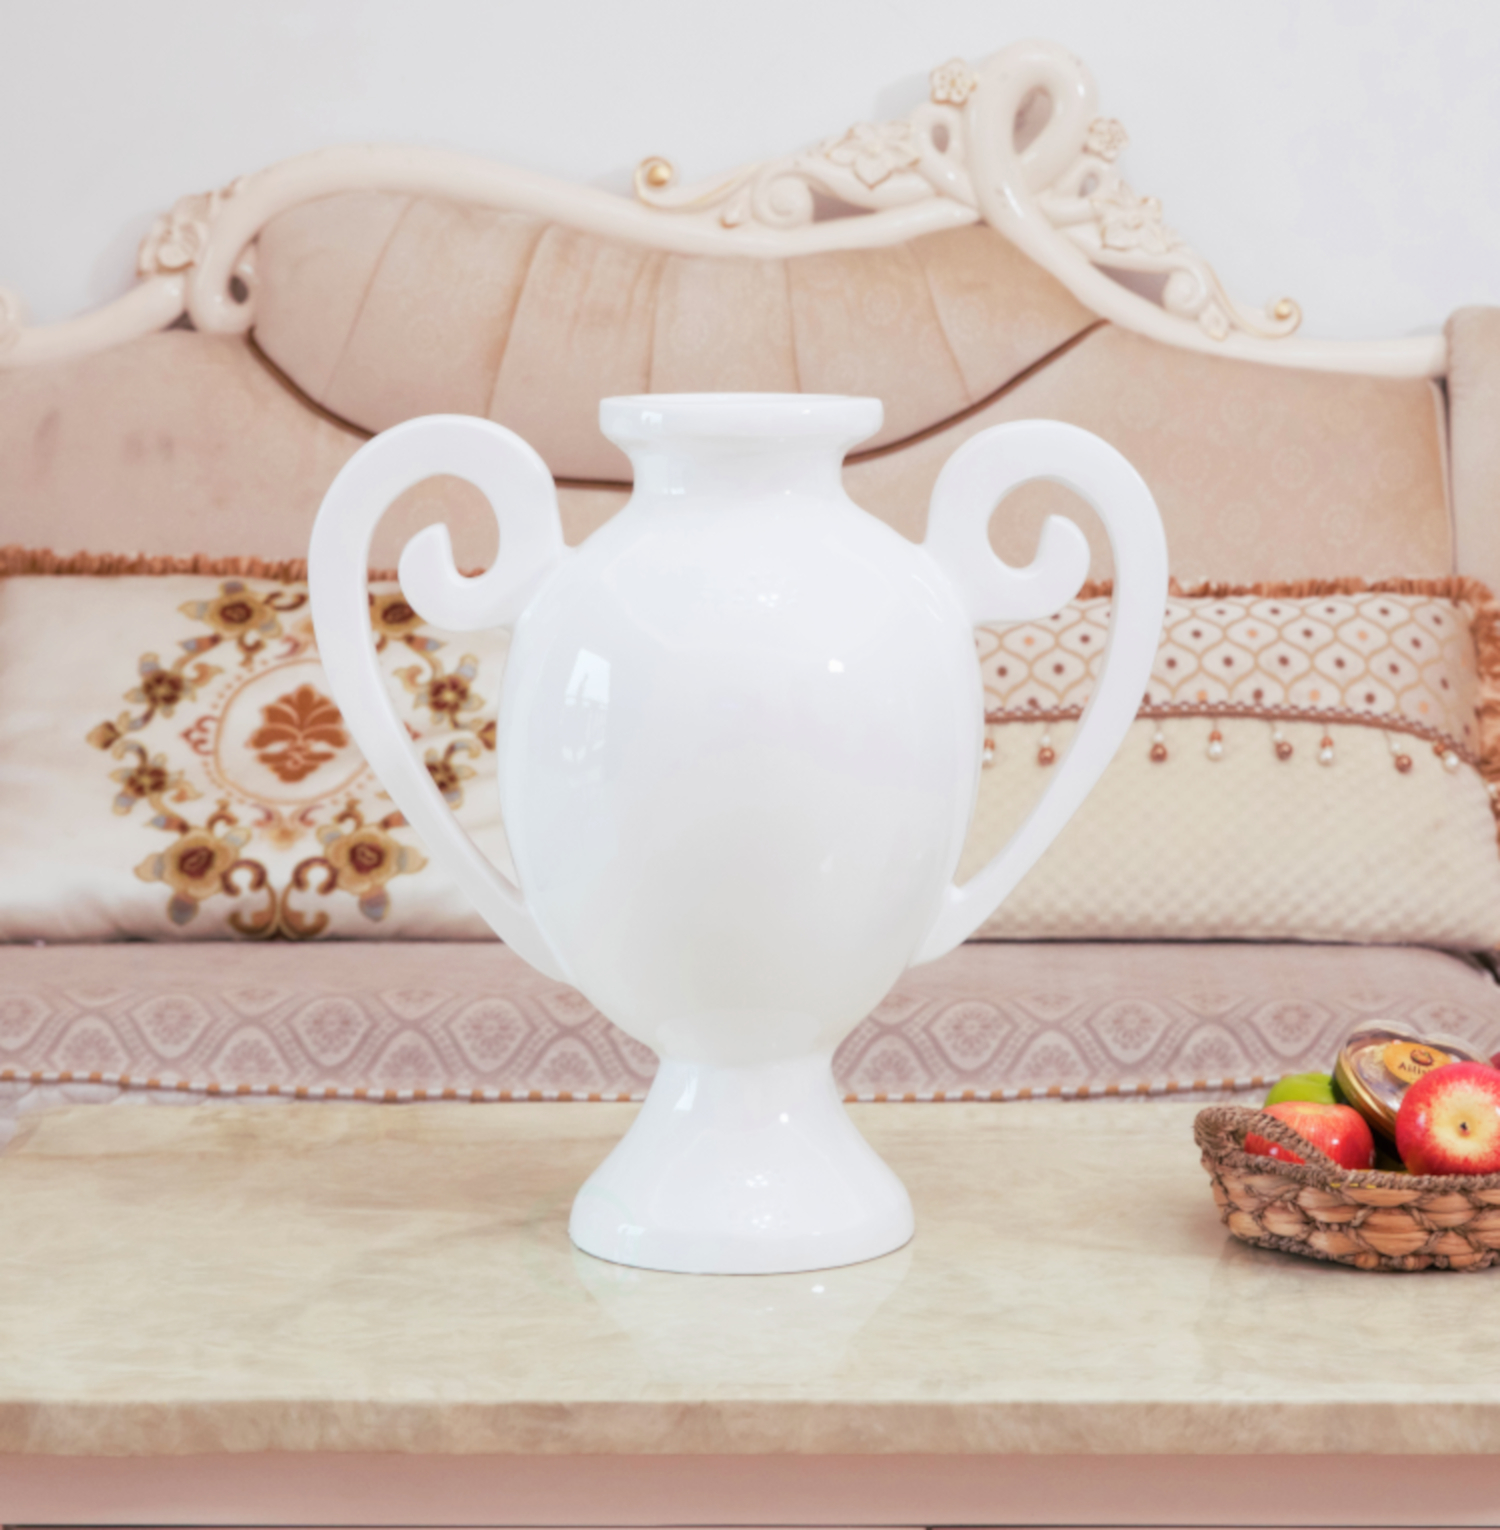 How to choose a vase for interior decoration? Check out our collection of glass vases décor, tall floor vases, white and black vases, flowers in vase, ceramic vases and more.